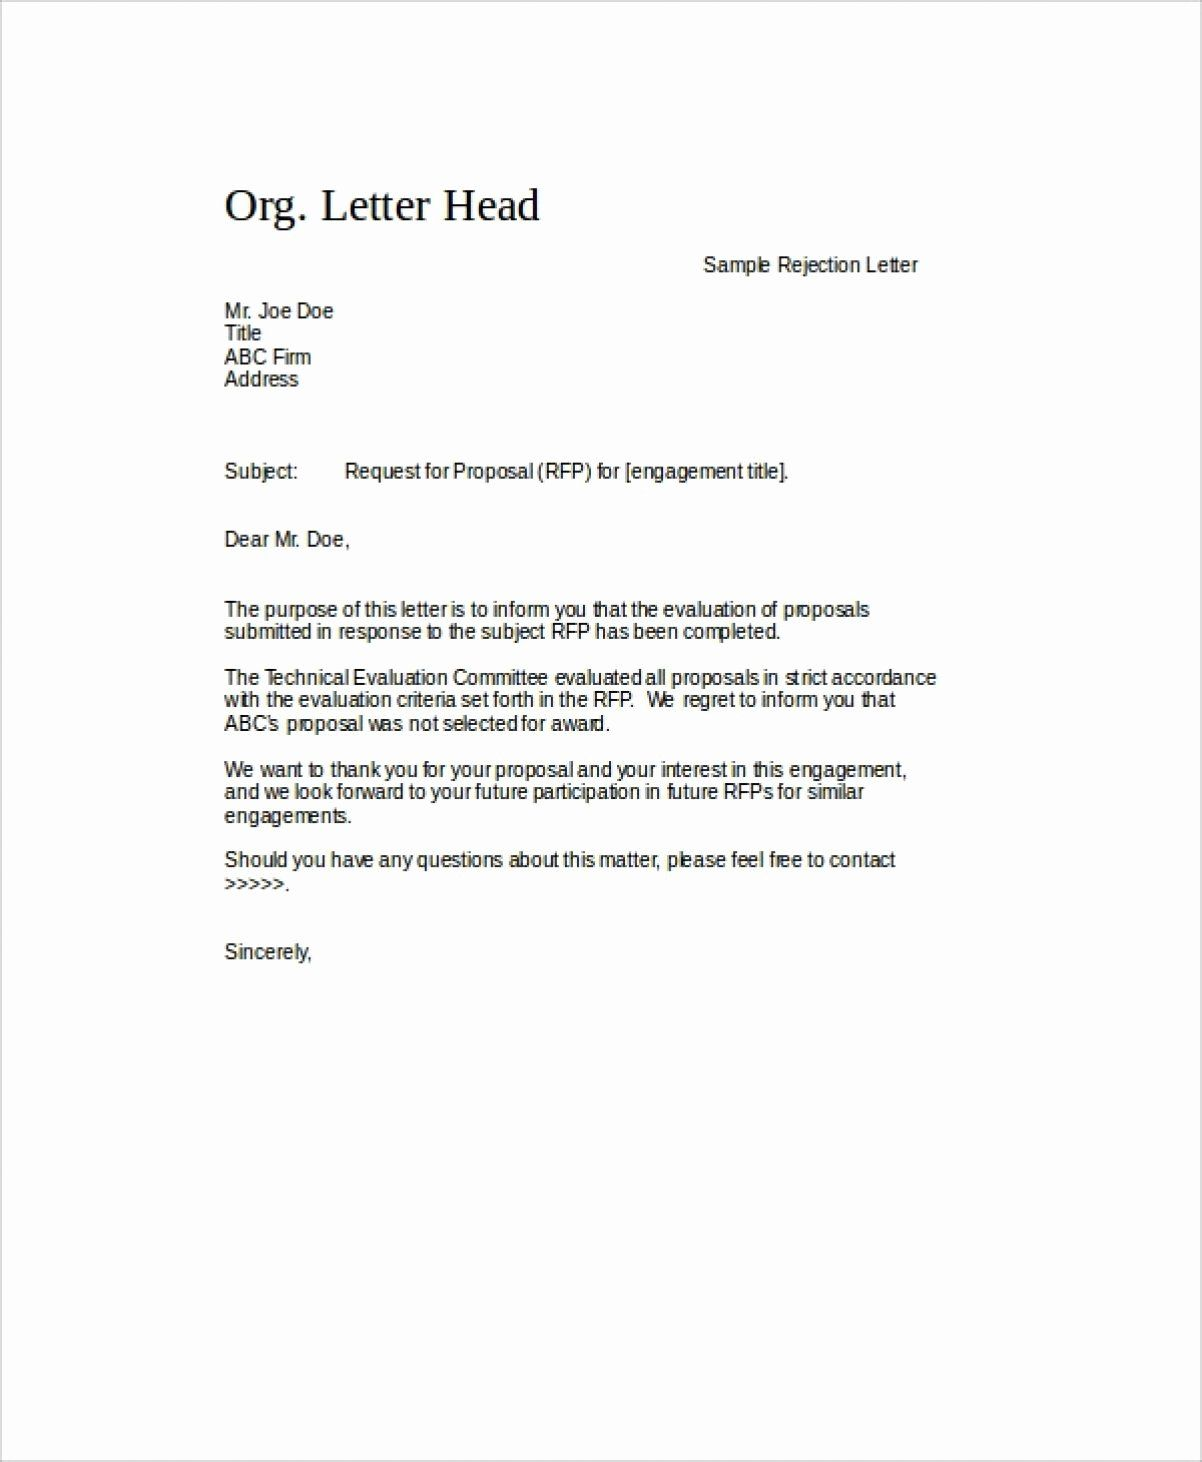 Request For Proposal Rejection Letter New 9 Rfp Rejection Letter In 2020 Proposal Letter Request For Proposal Sample Proposal Letter